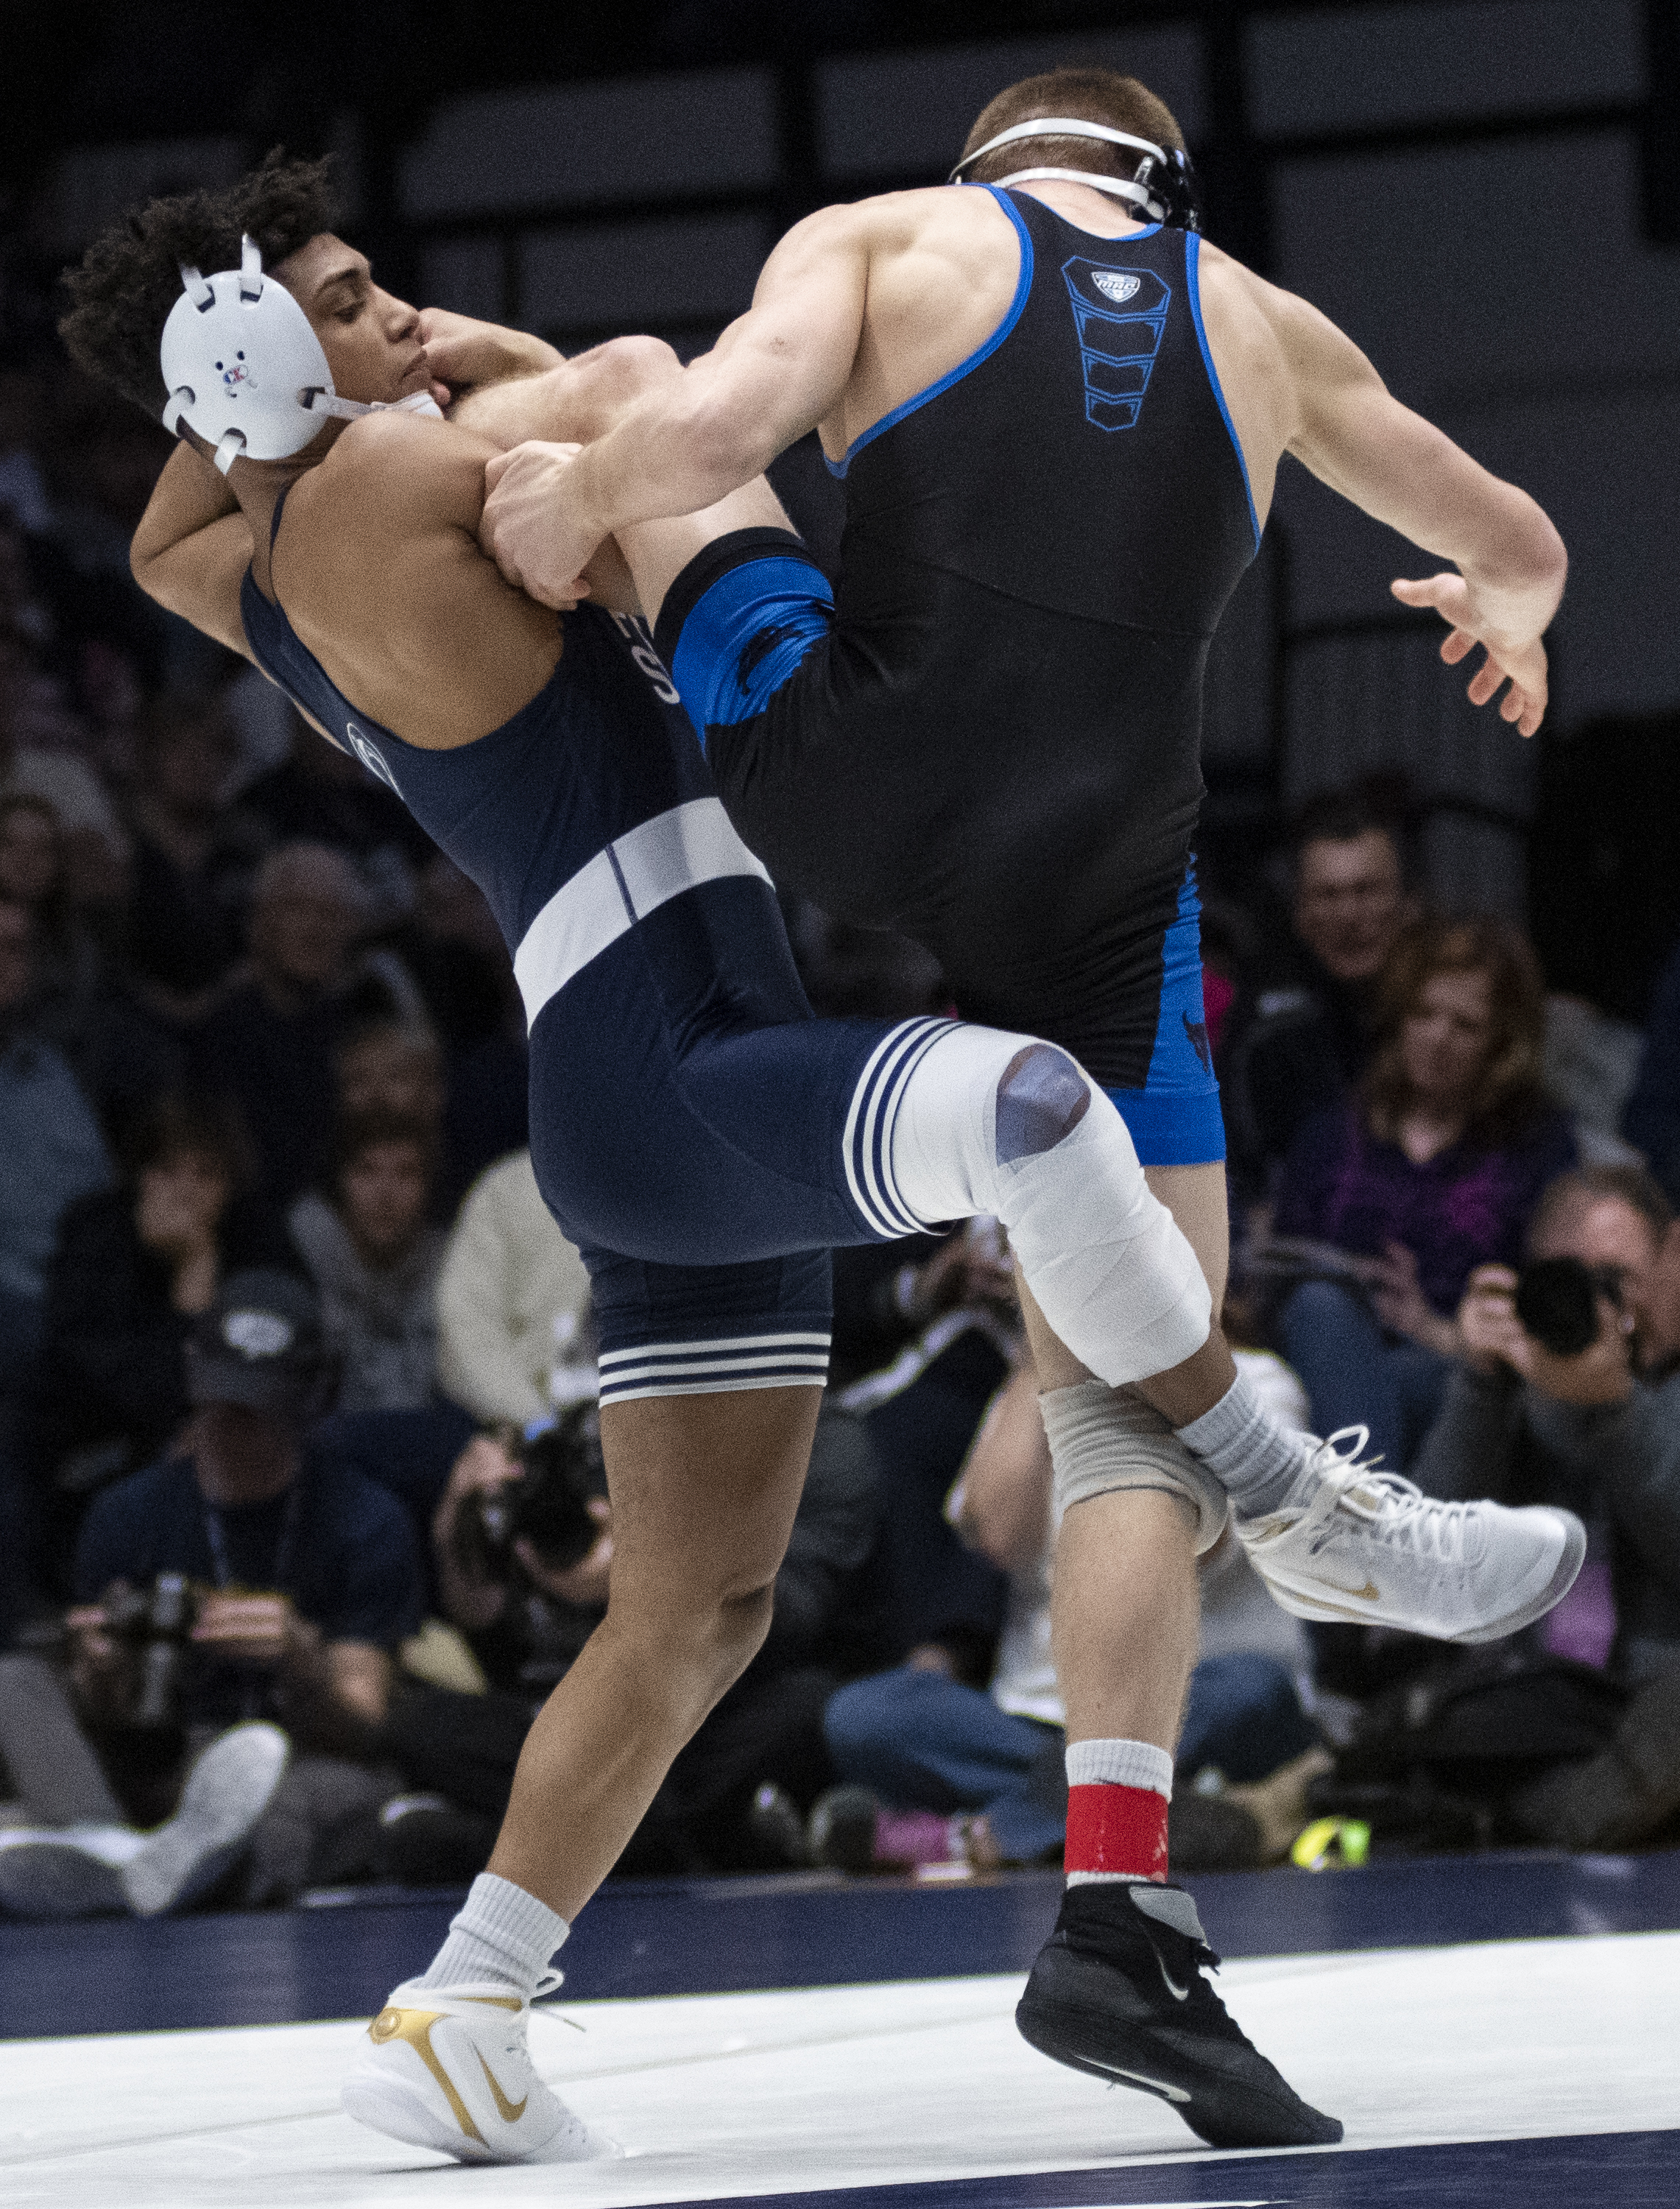 Justin Lopez attempts to take down Kyle Akins during the wrestling match against Buffalo at Rec Hall, Sunday, Feb. 24, 2019. On Senior Day, Penn State defeat Buffalo 47-3. | Photo by: Noah Riffe